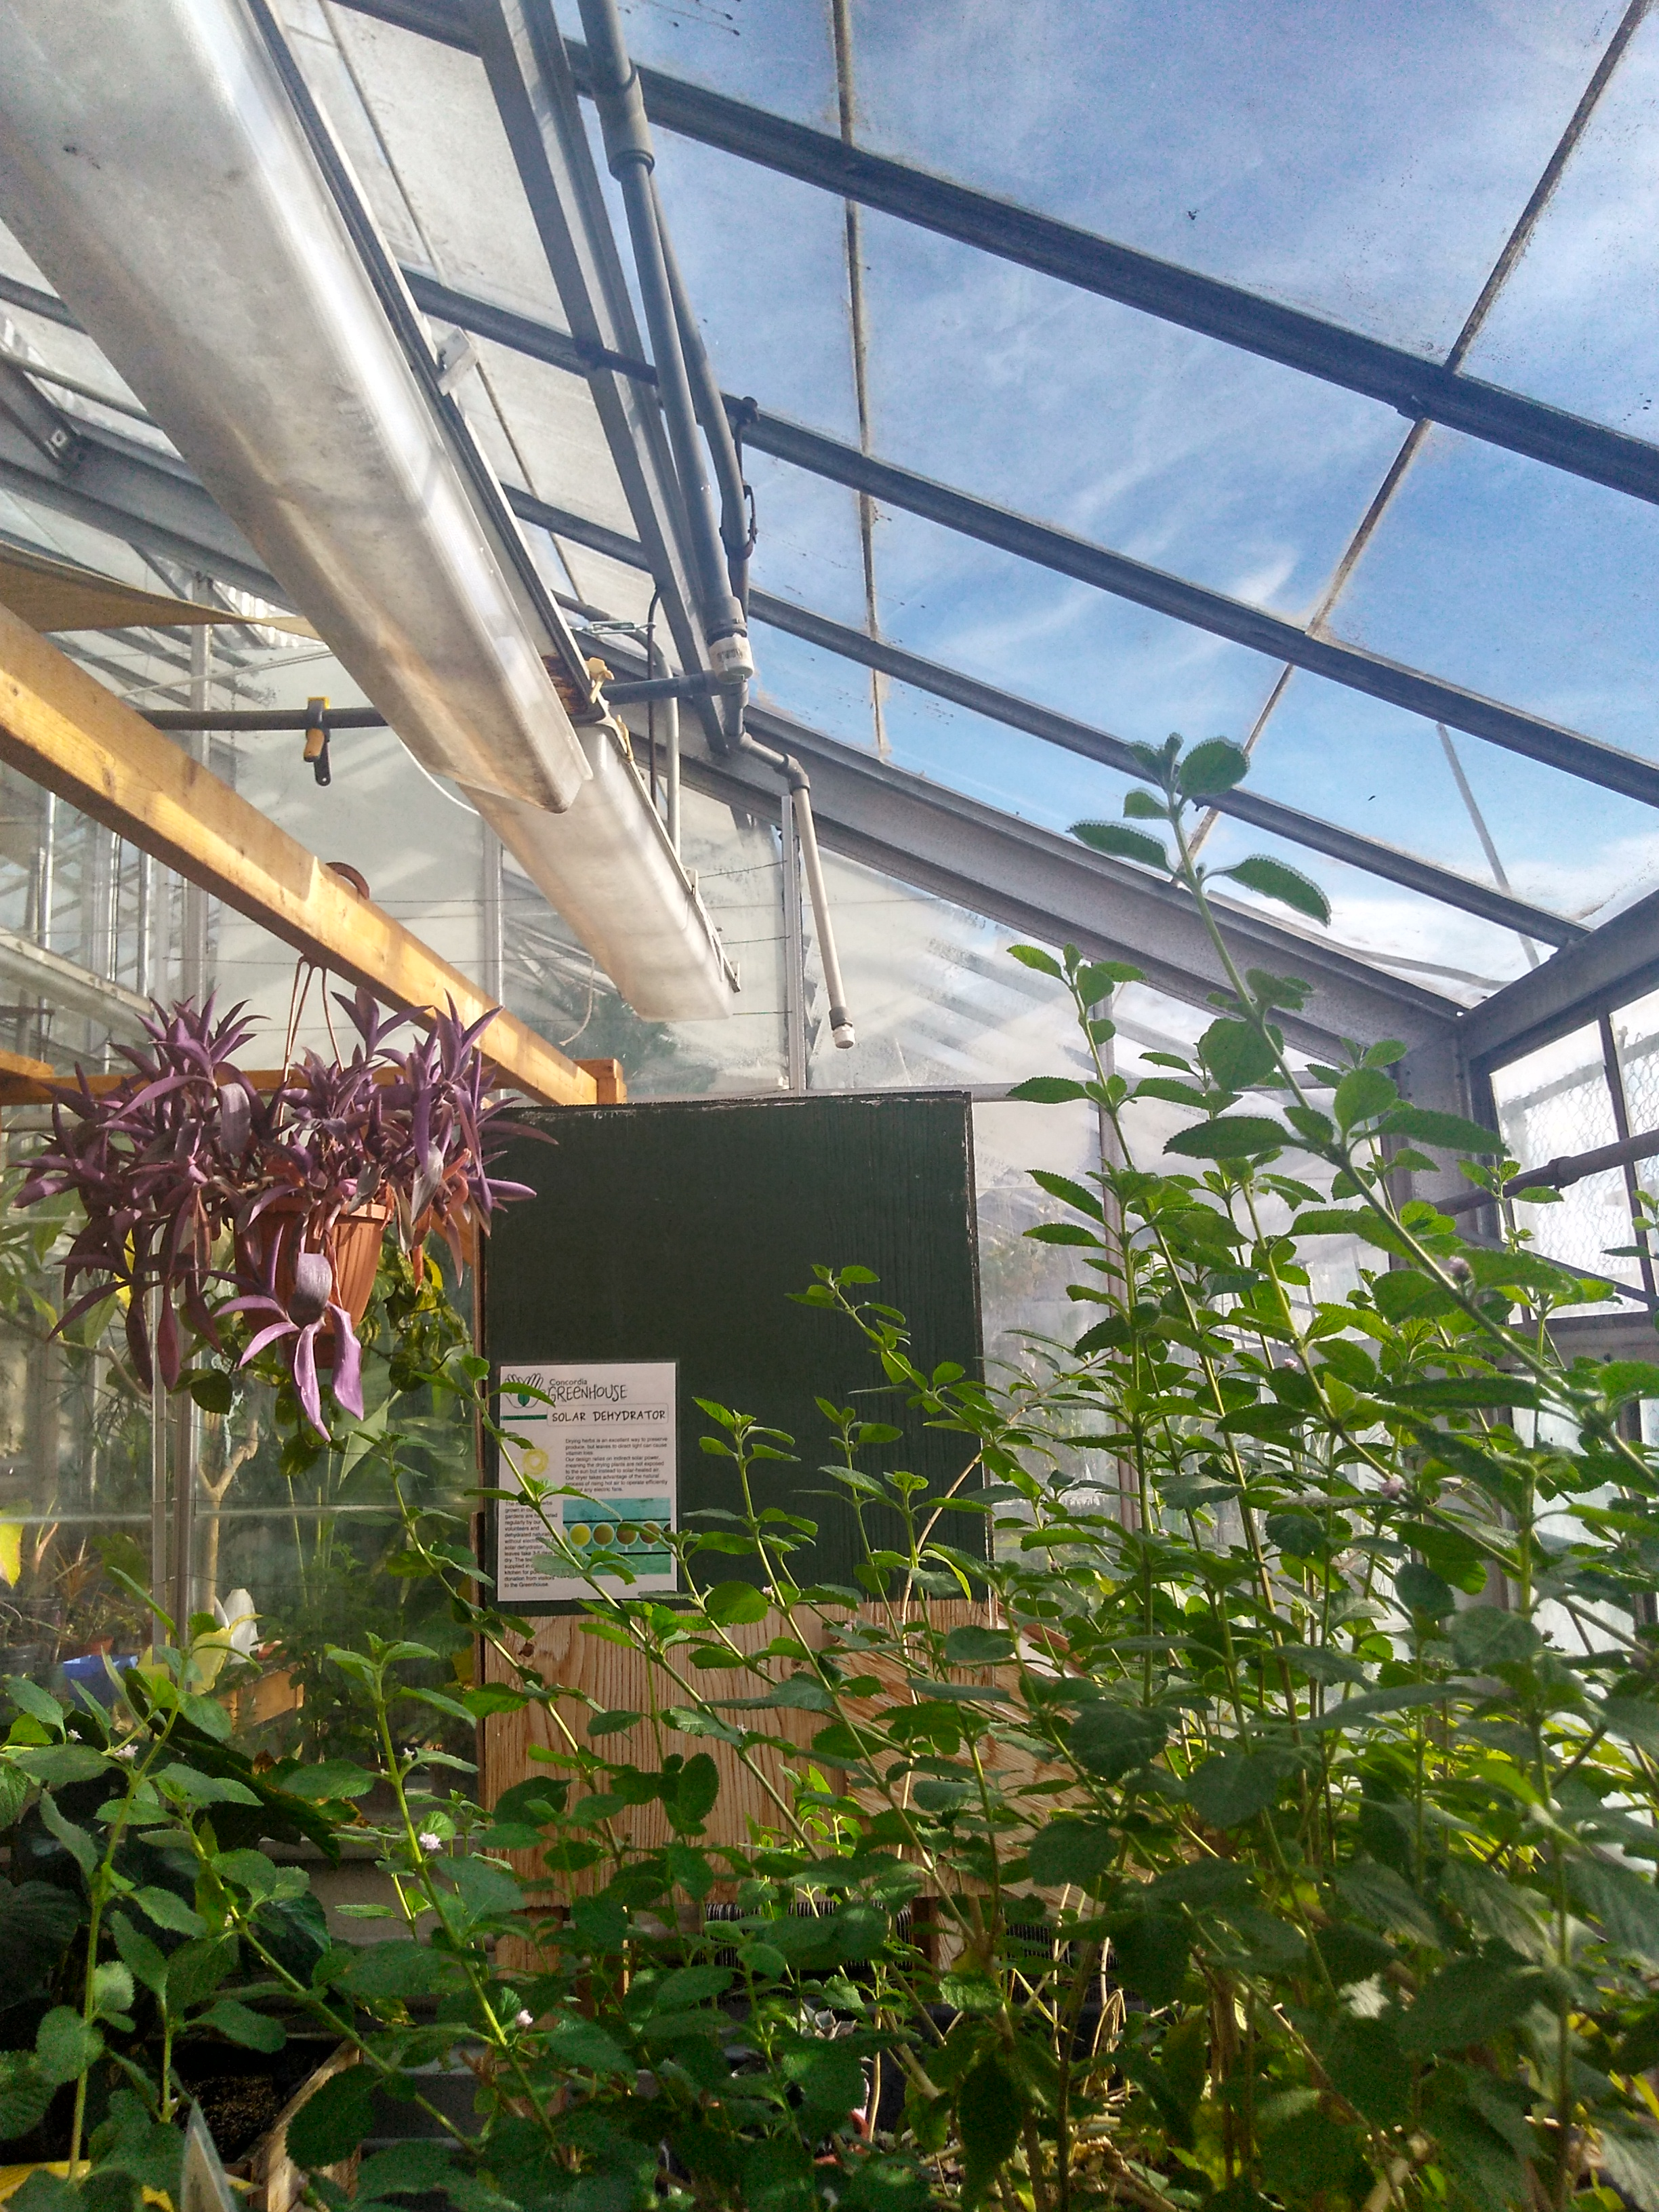 canada gardening tunnel growing online at buy aosom in greenhouse walk outsunny garden portable plant greenhouses